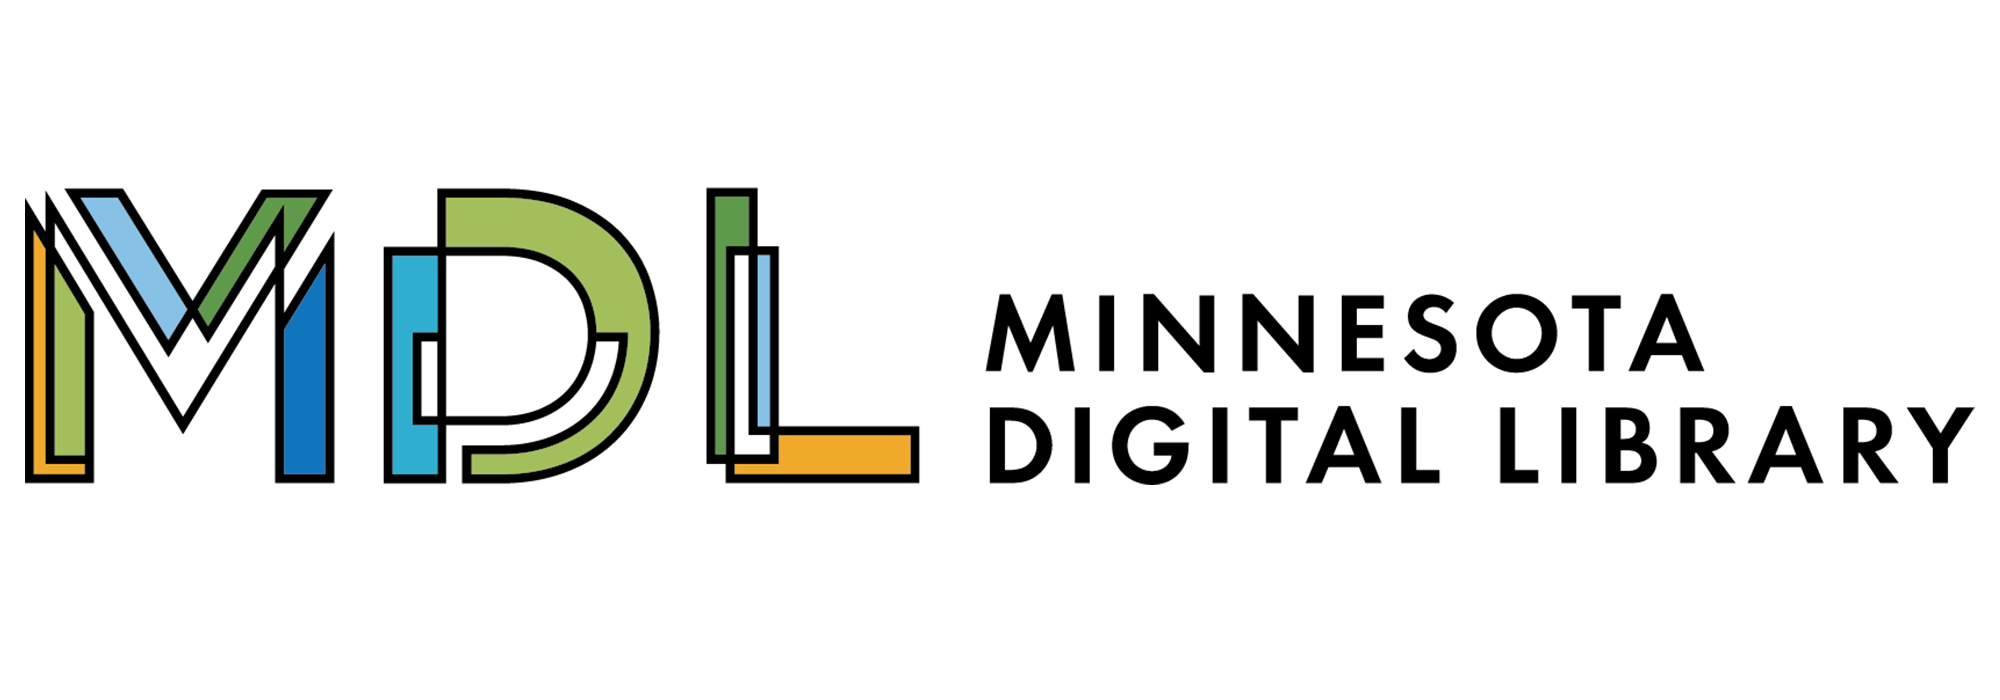 Minnesota Digital Library logo.